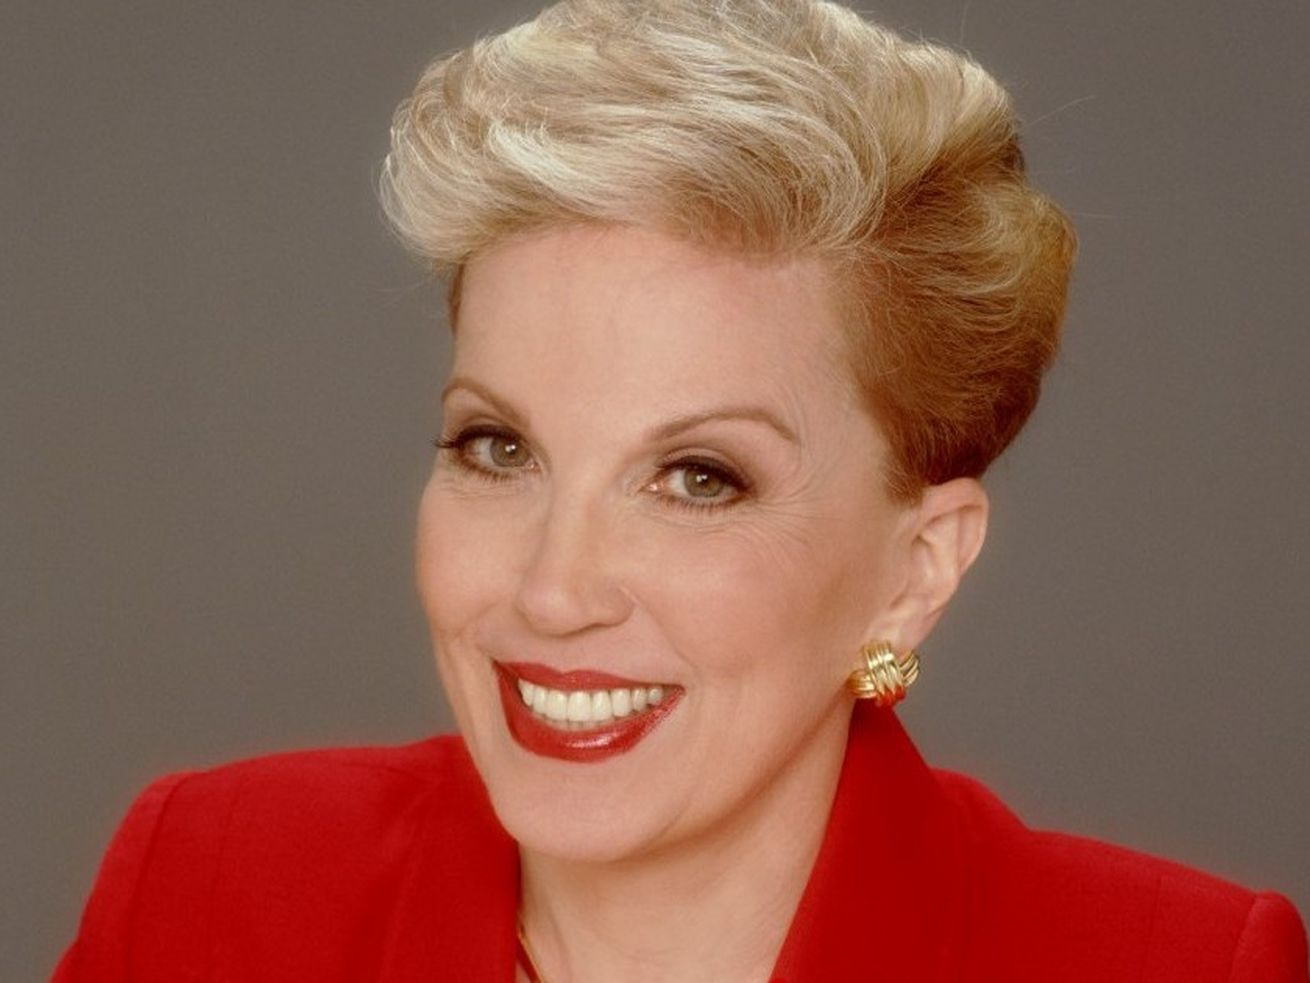 Dear Abby: When she visits, mom wants to bring a guest who's not welcome